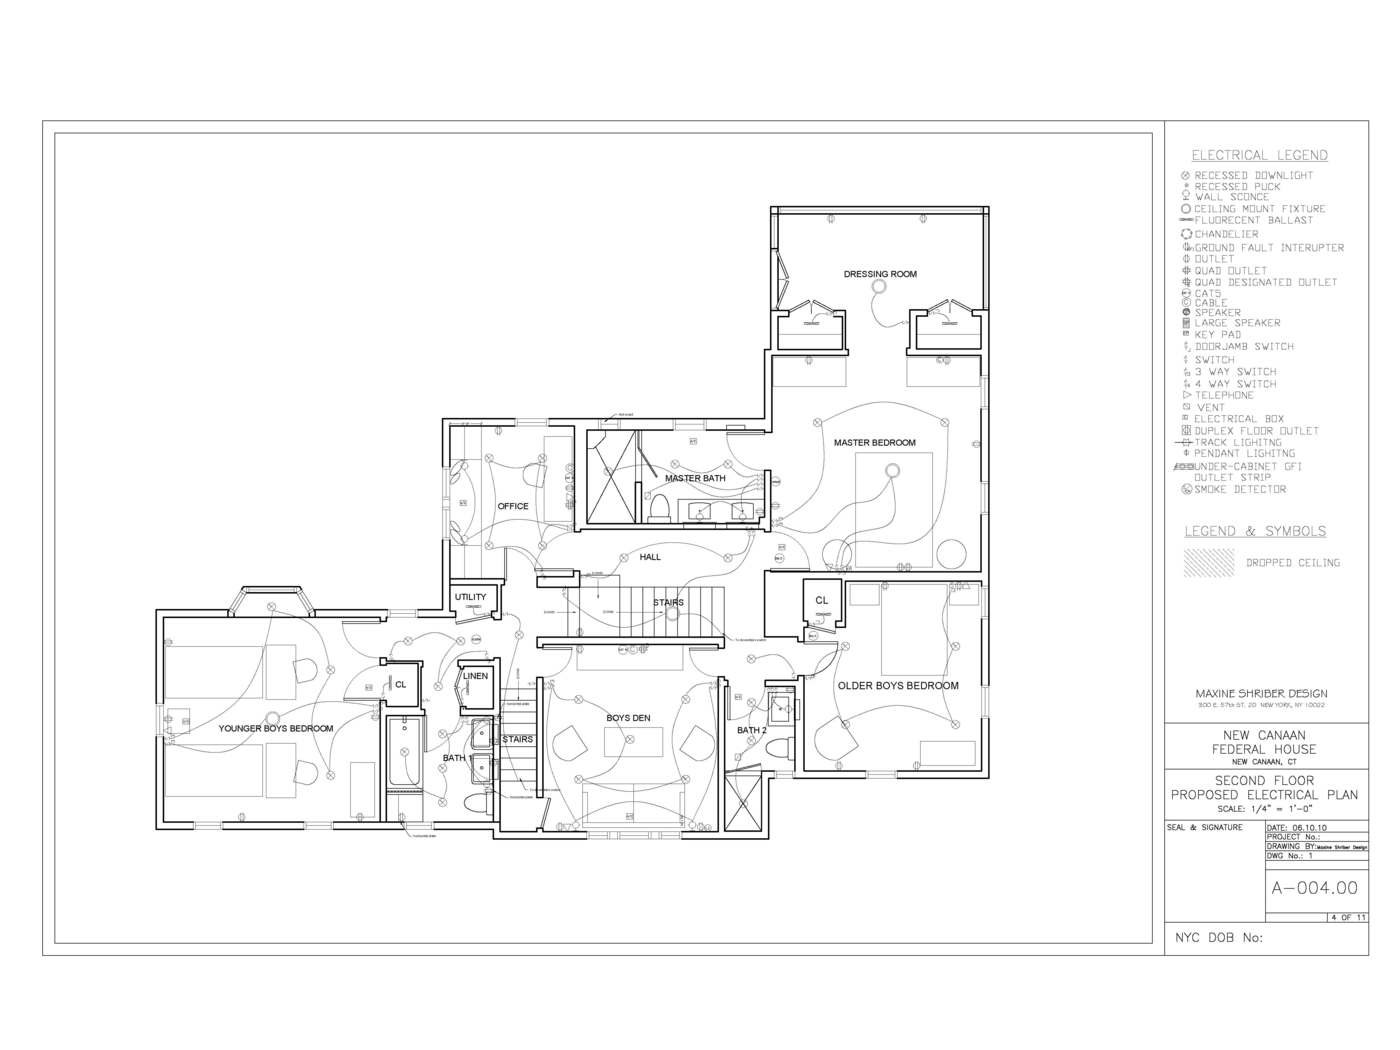 New Canaan Federal Home By Jena Haywood Leed Ap At 4 Way Switch Electrical Plan Second Fl Proposed